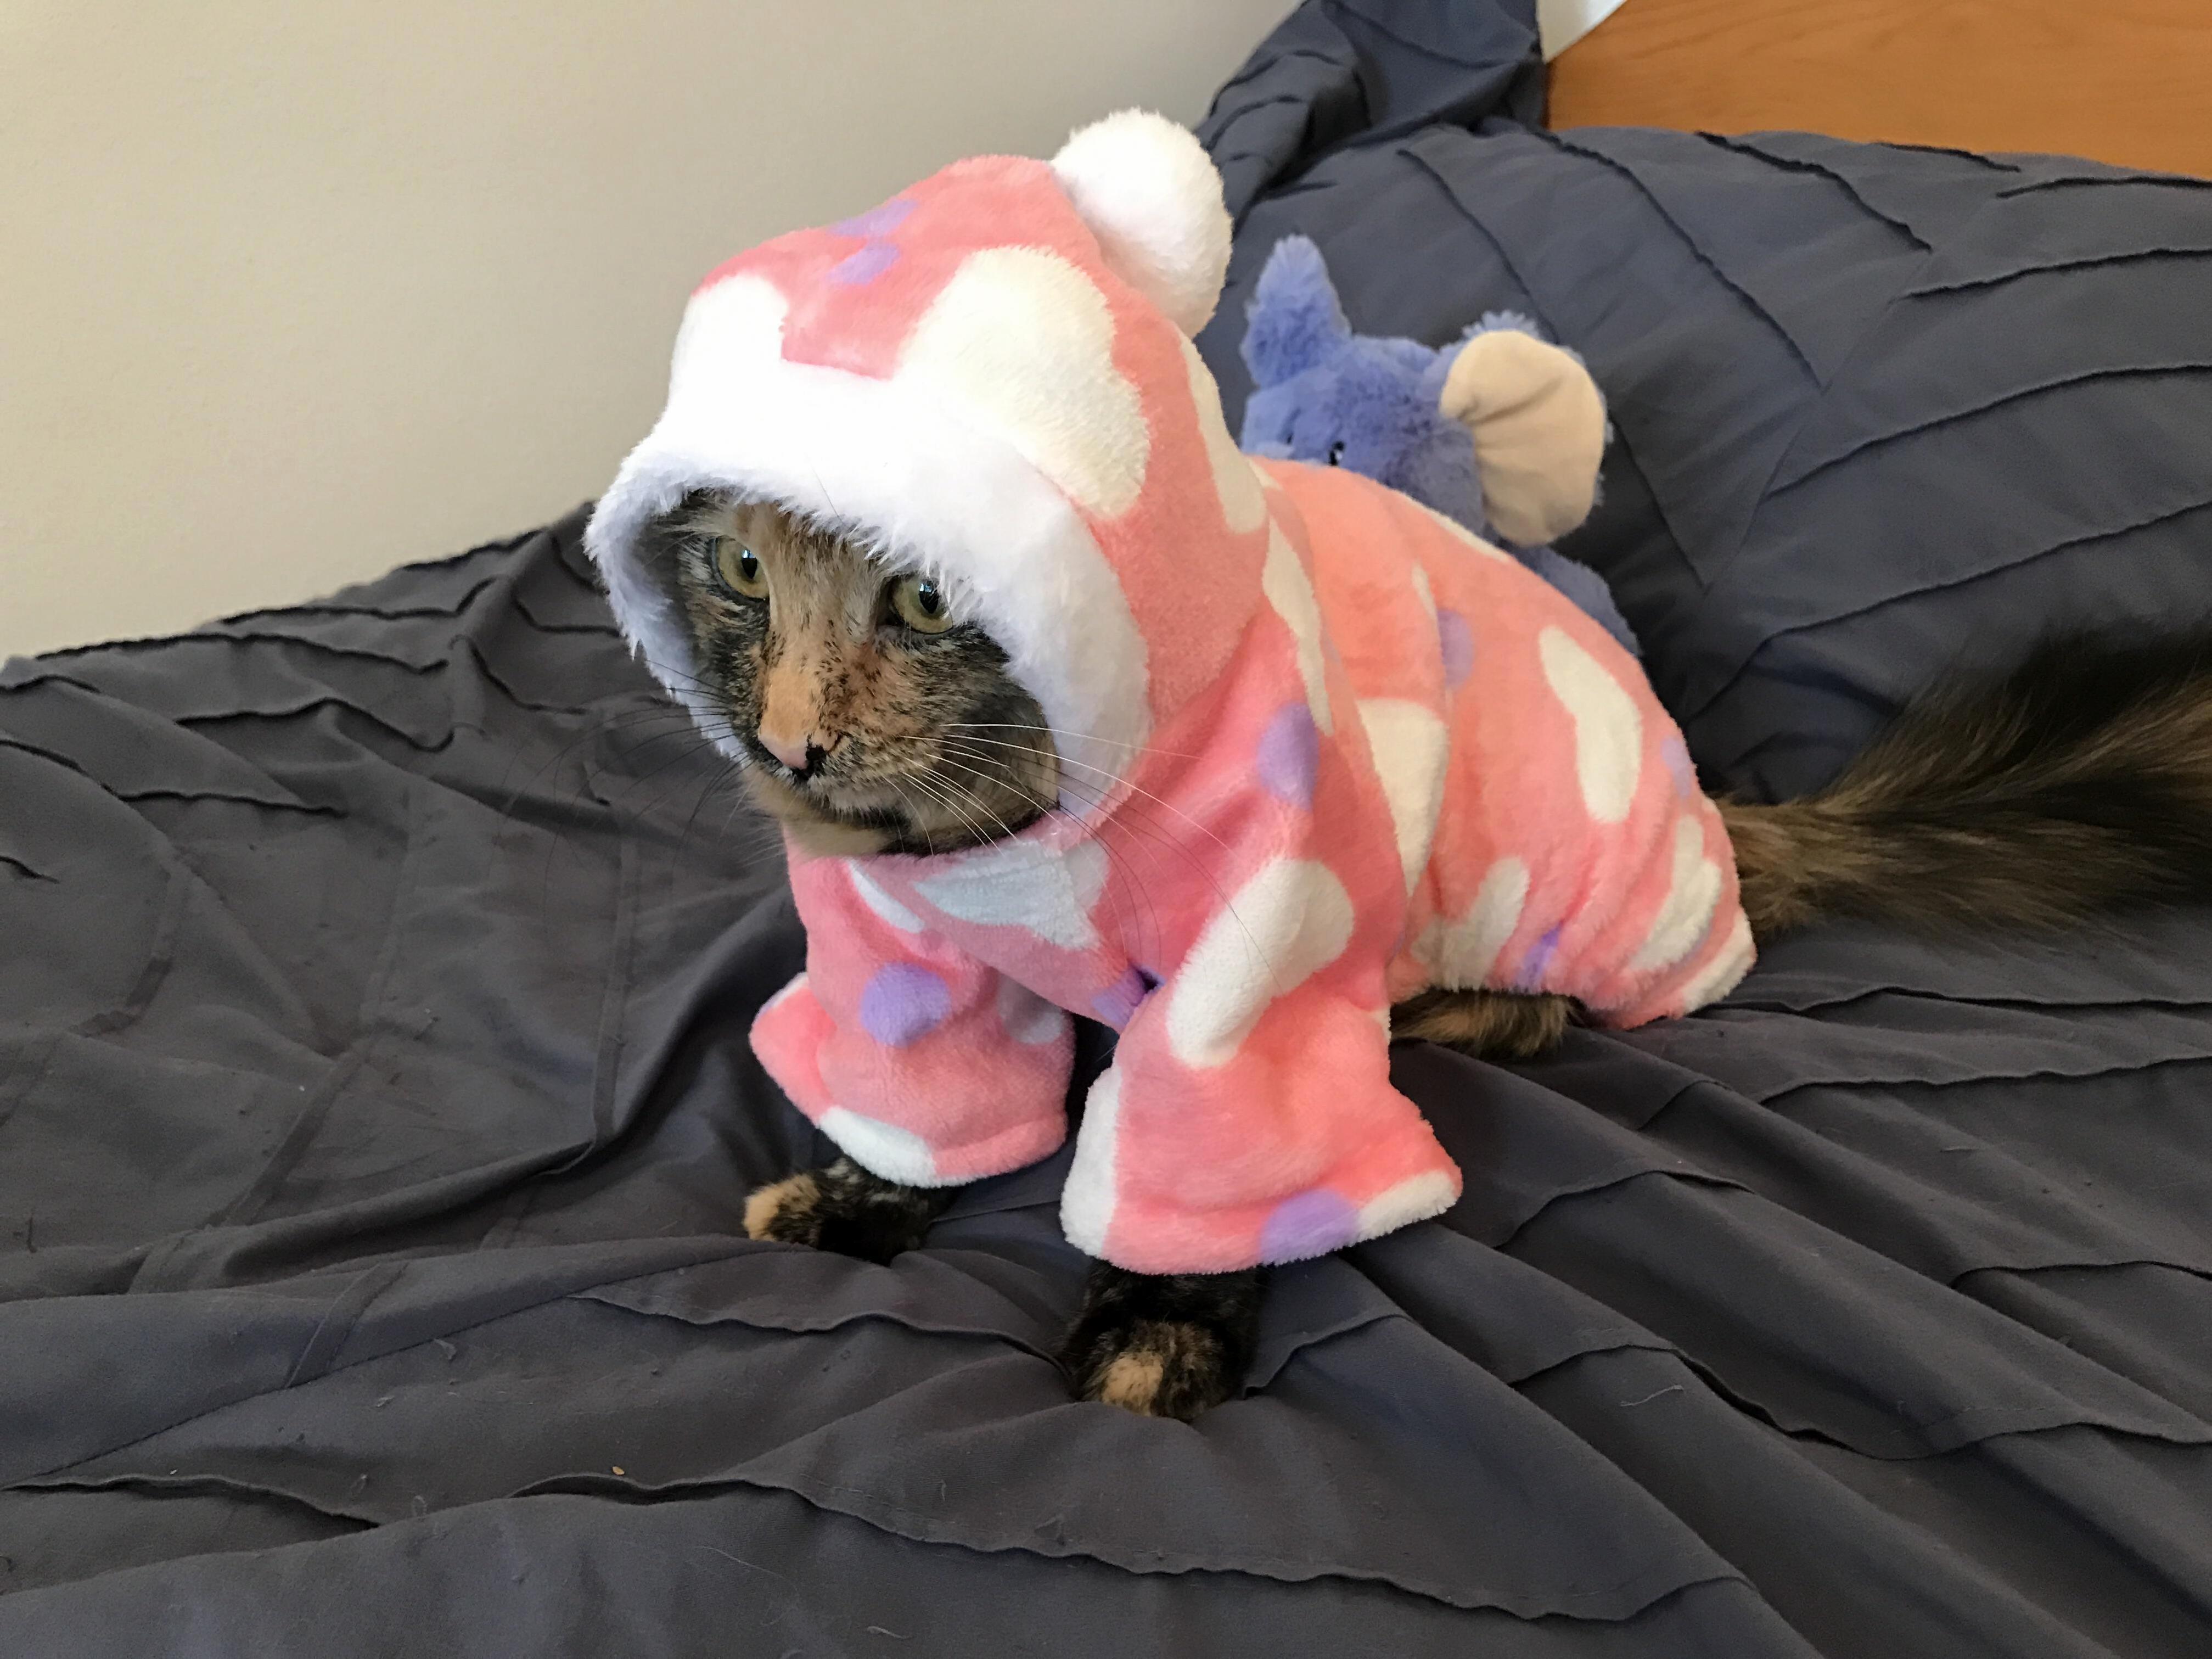 When your cold winter night outfit arrives after the cold winter has ended.